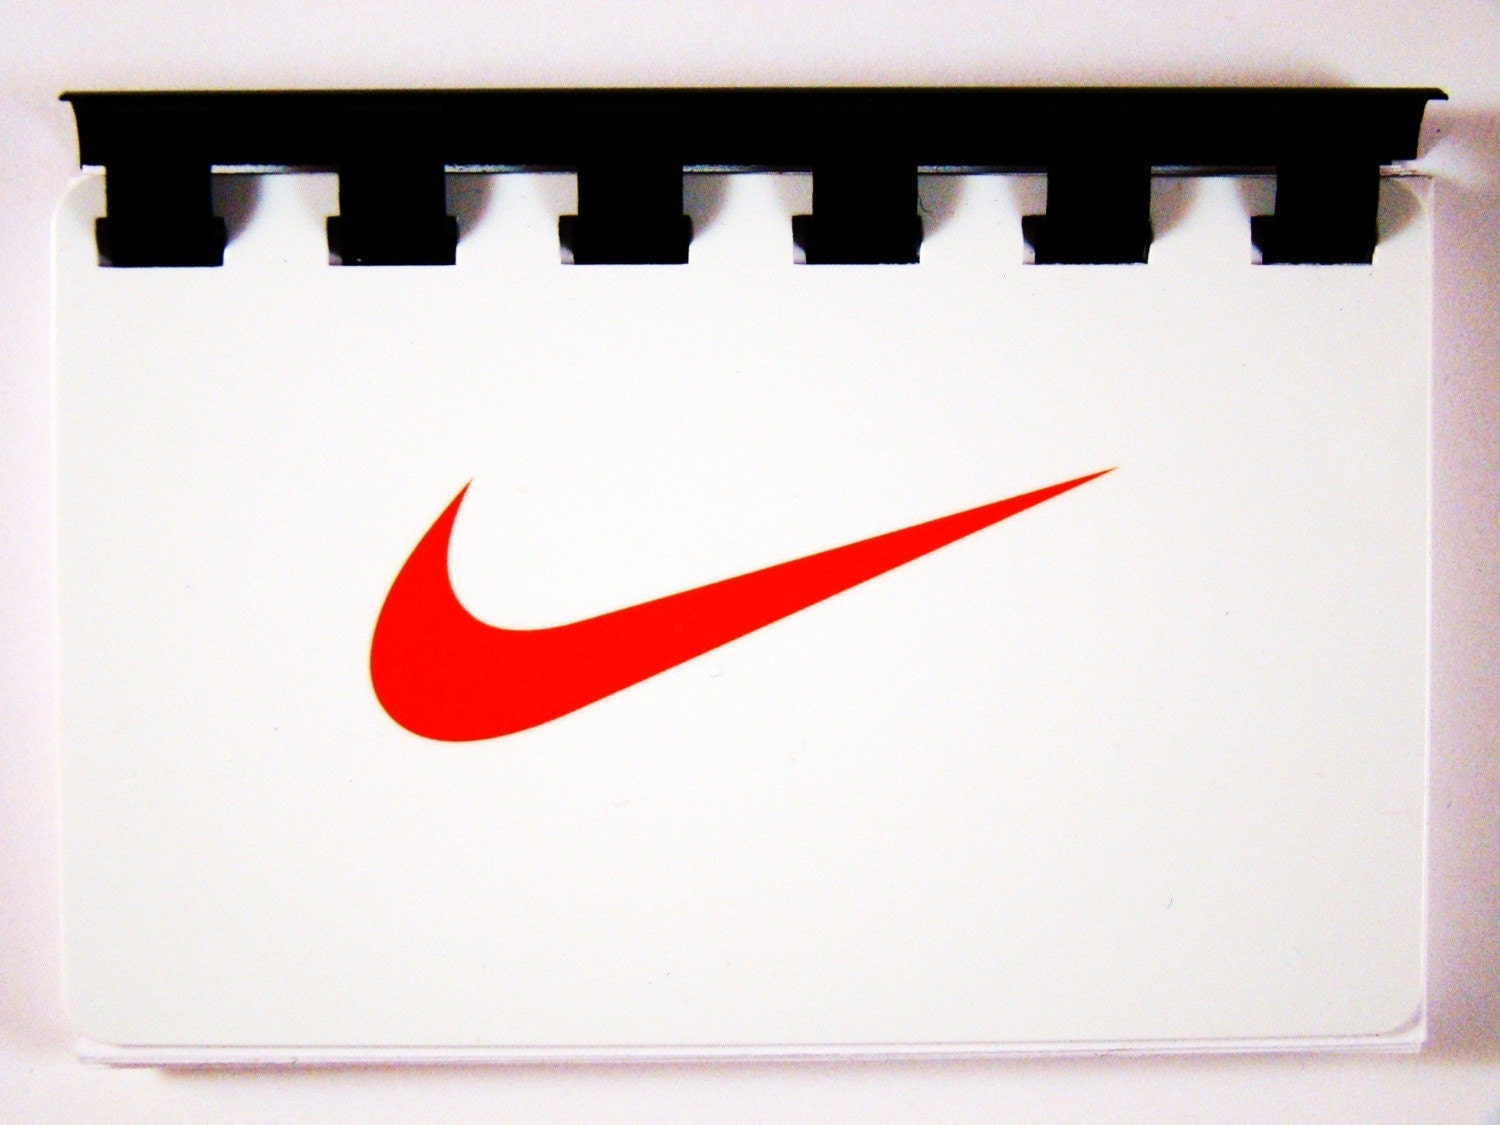 Nike Giftcard  Notebook  ----  No Value on Card -- Novelty Purposes Only